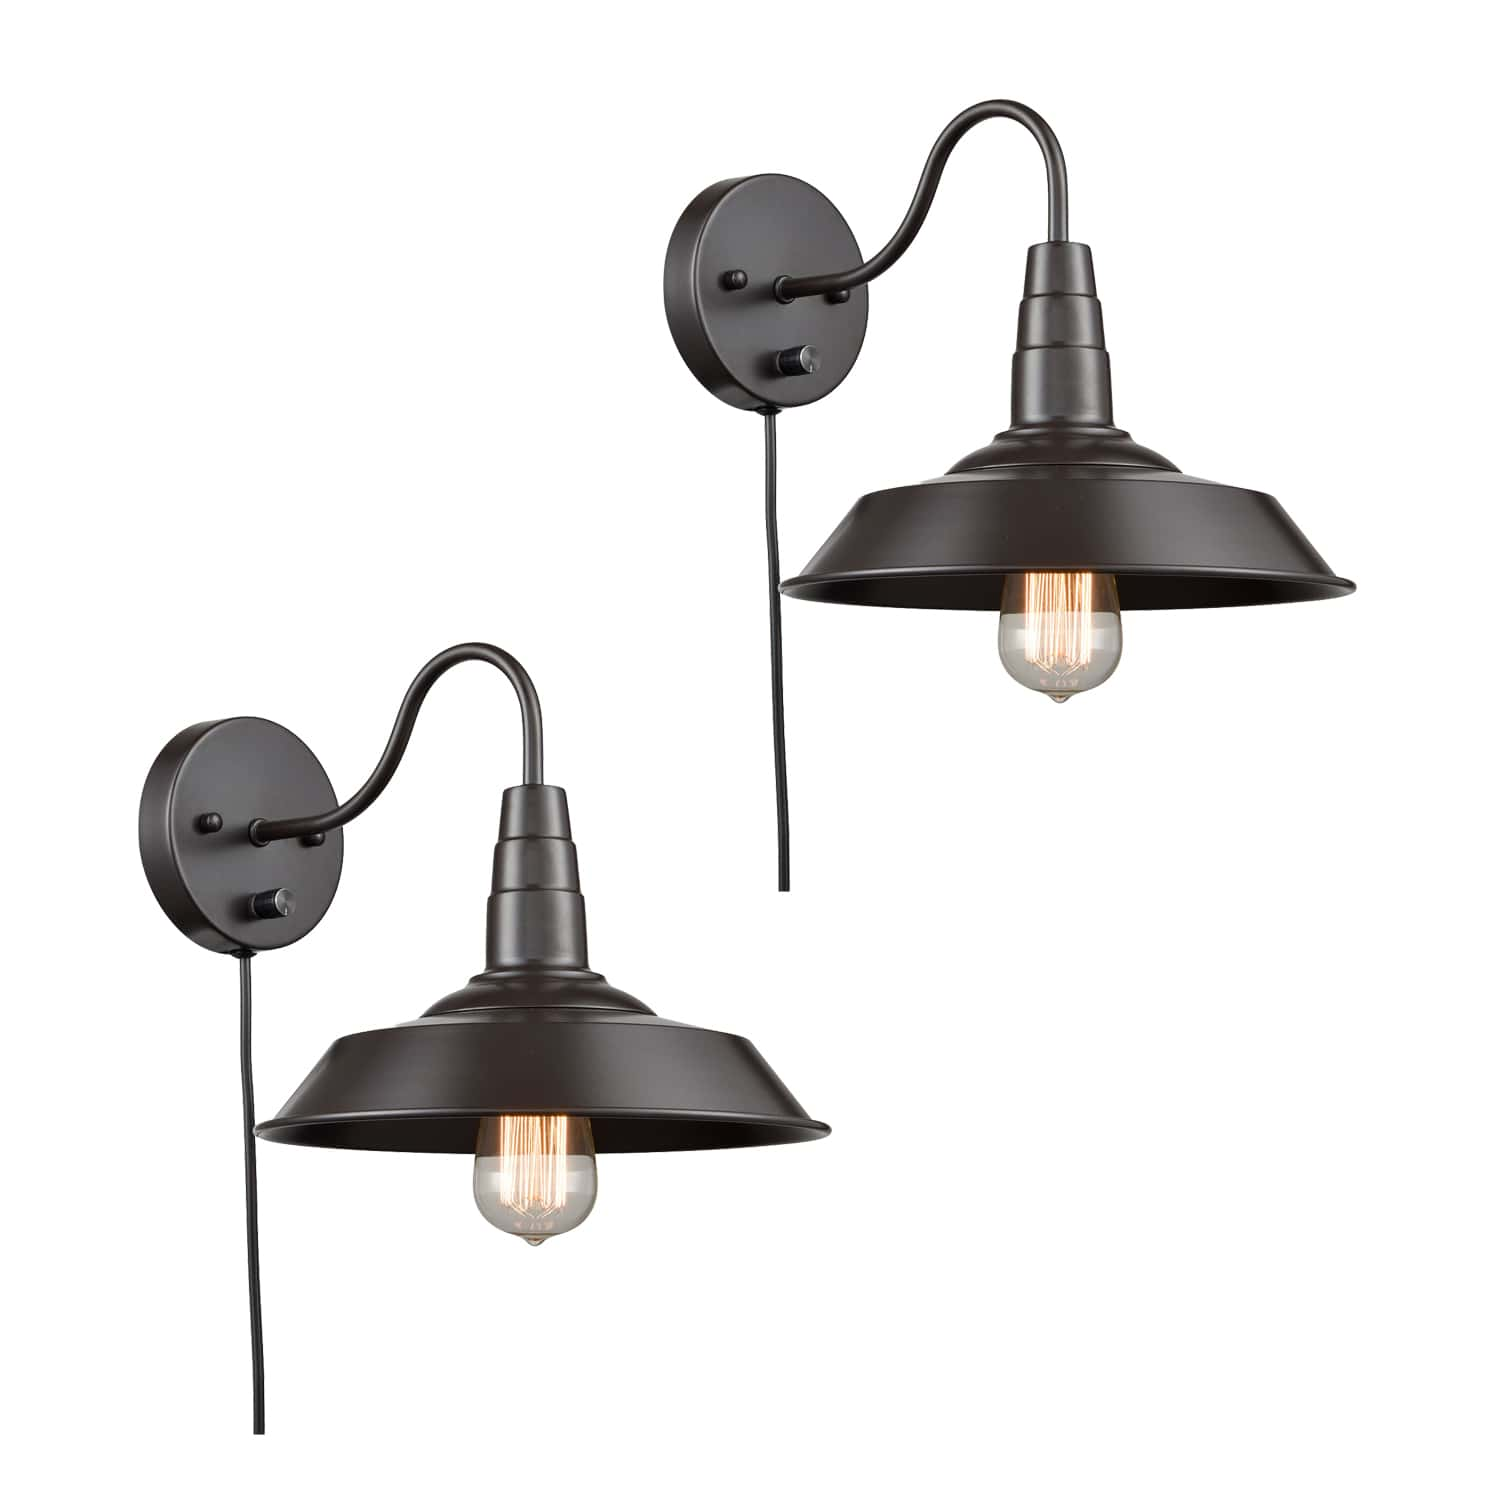 Oil Rubbed Bronze Gooseneck Industrial Plug In Wall Sconces Set of Two